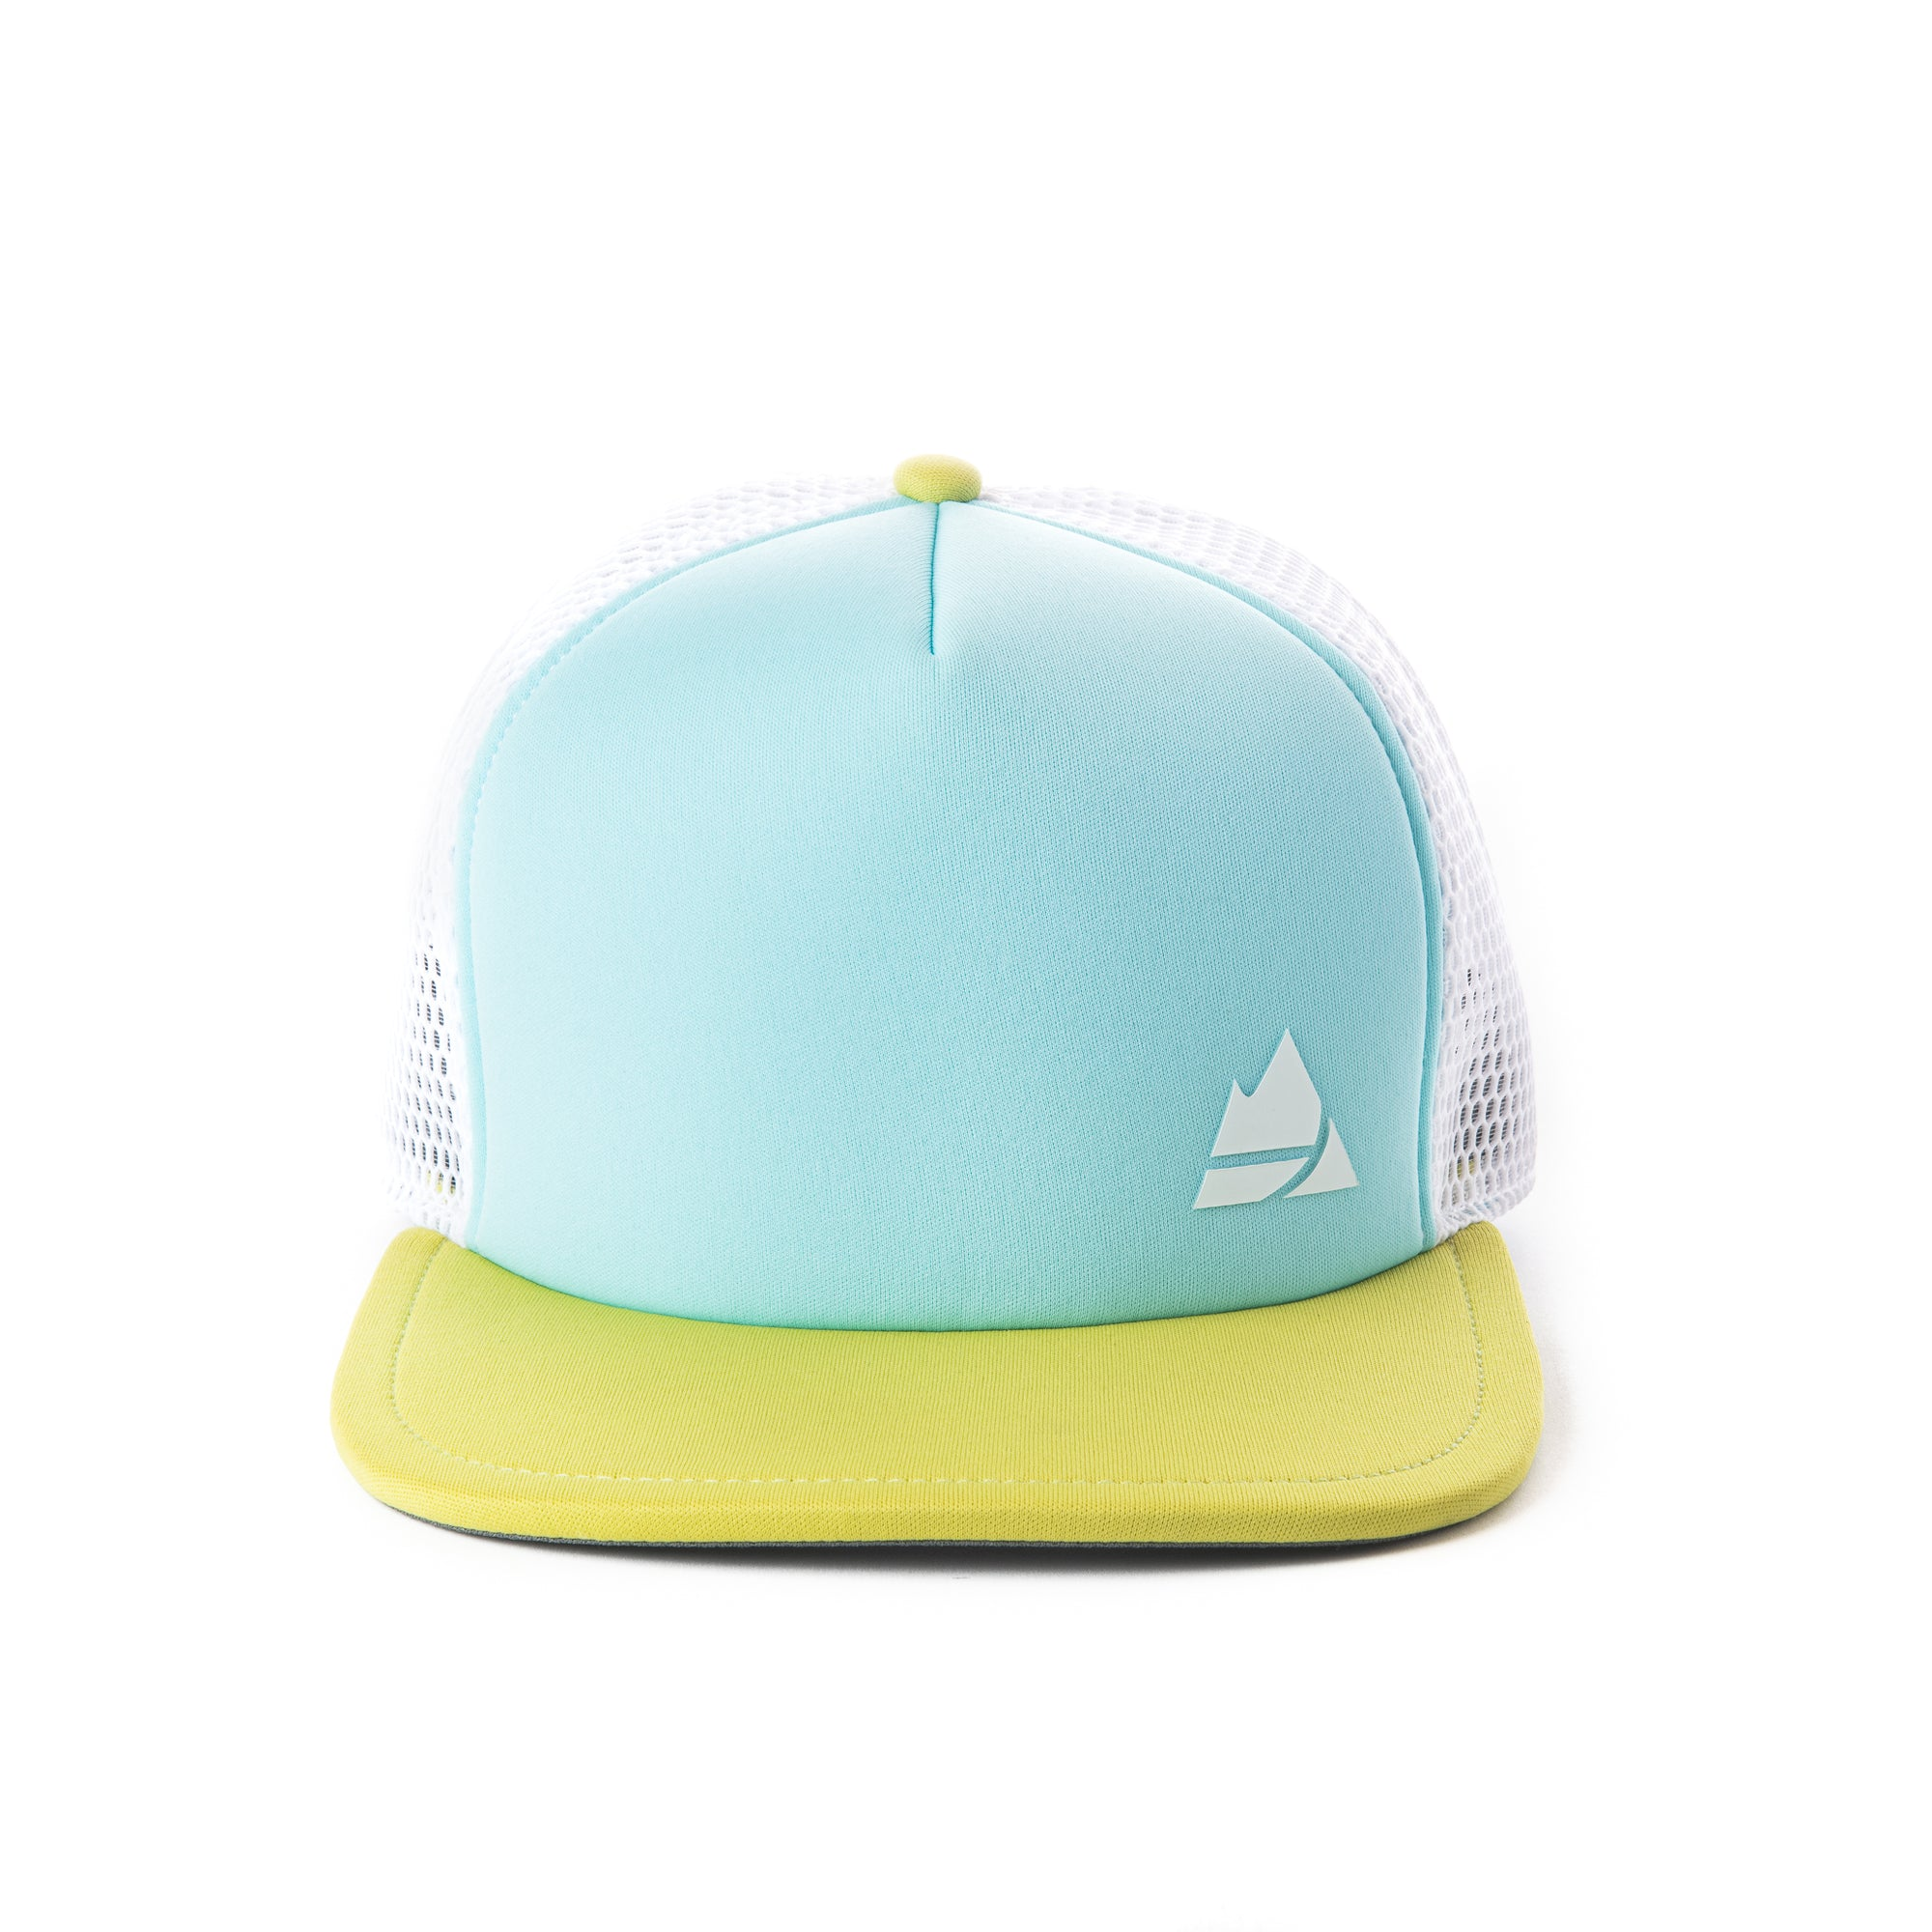 NEWEST DROPPED MOVI Classic Trucker! - Limesicle in the Sky